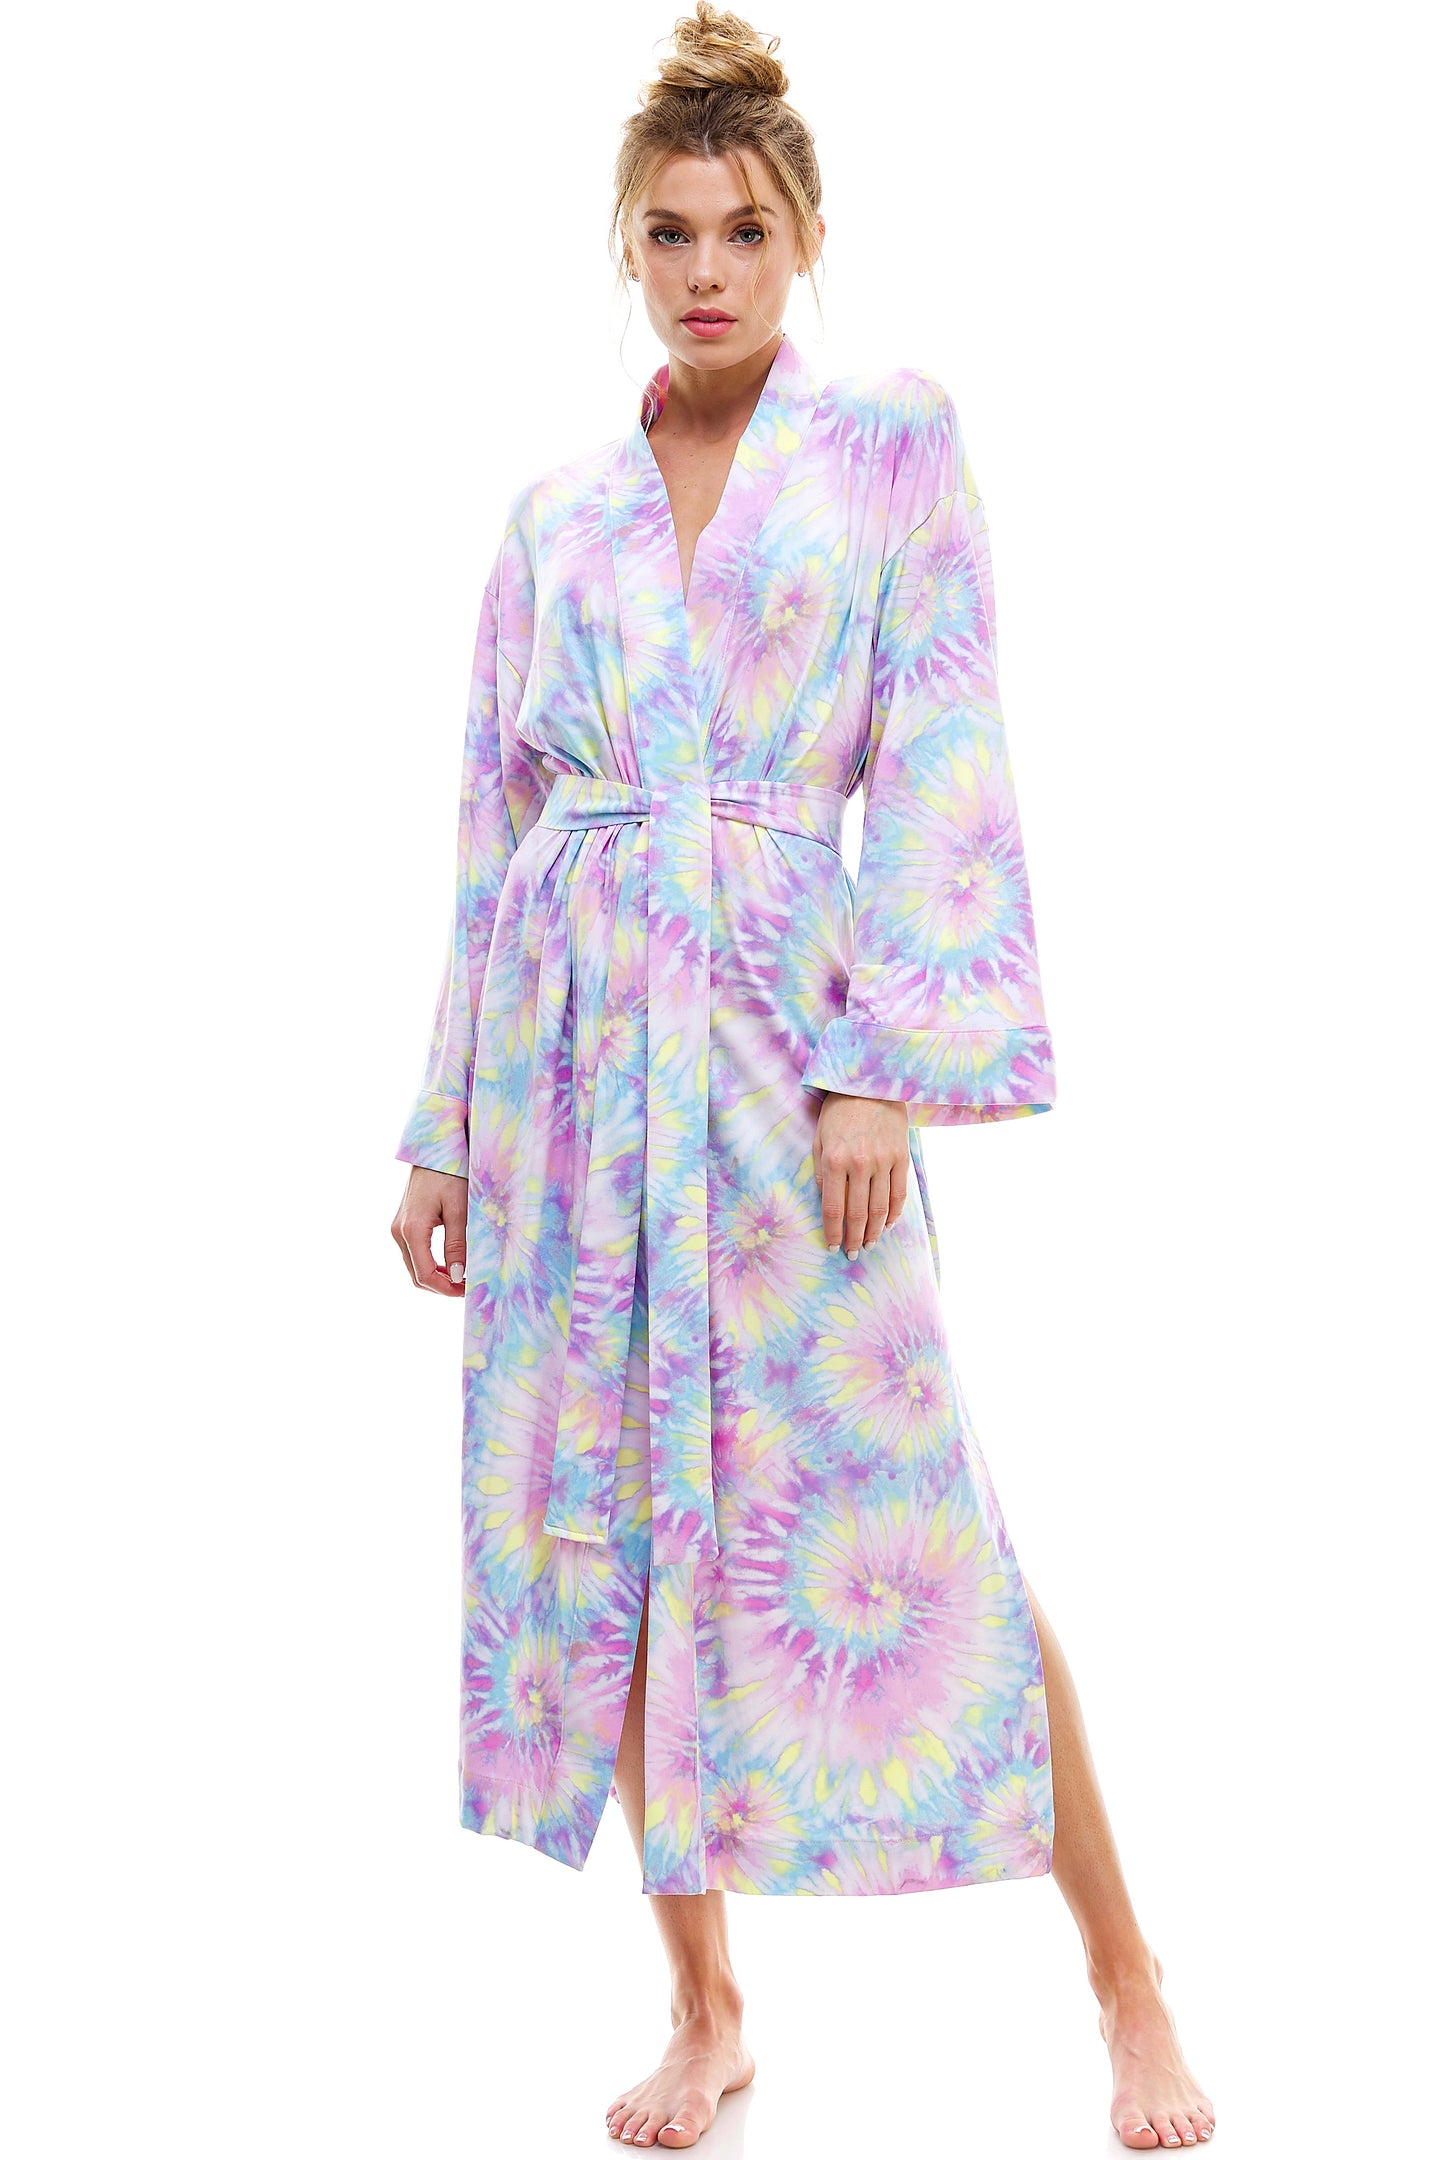 KIMONO | COTTON CANDY PRE-ORDER expected 6/30-8/1